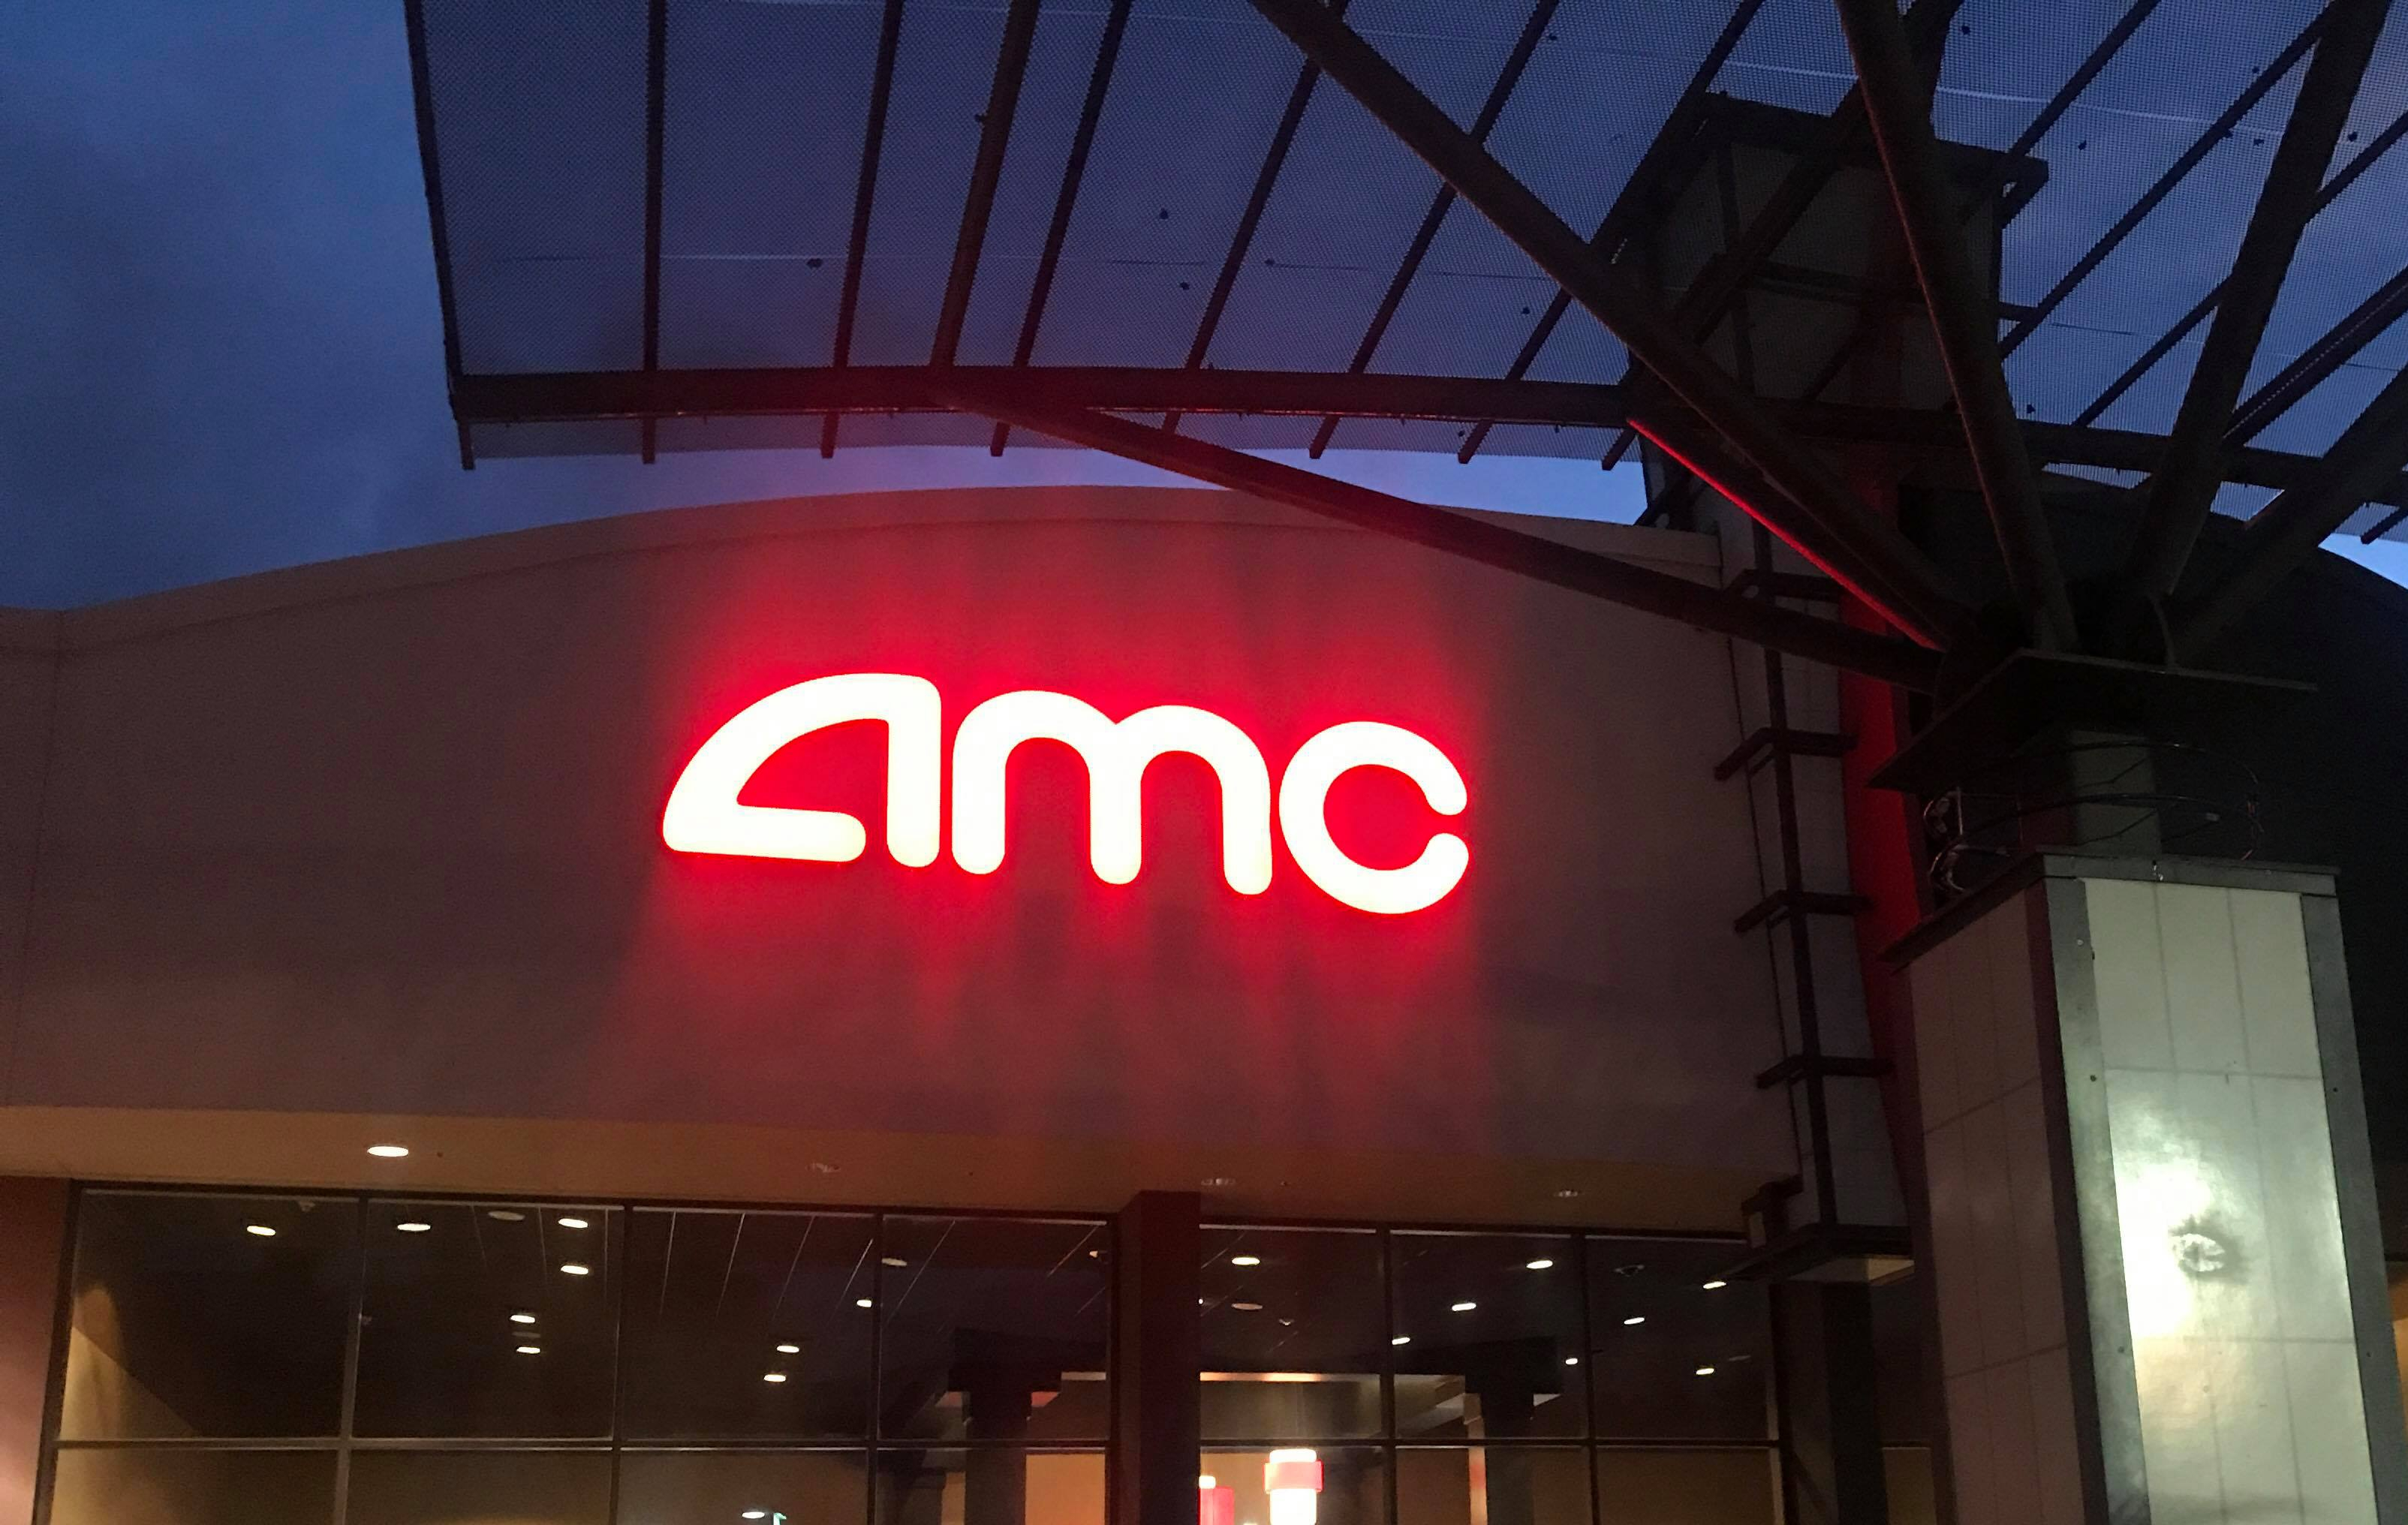 Take your kids to see a $4 movie this summer at AMC theatres